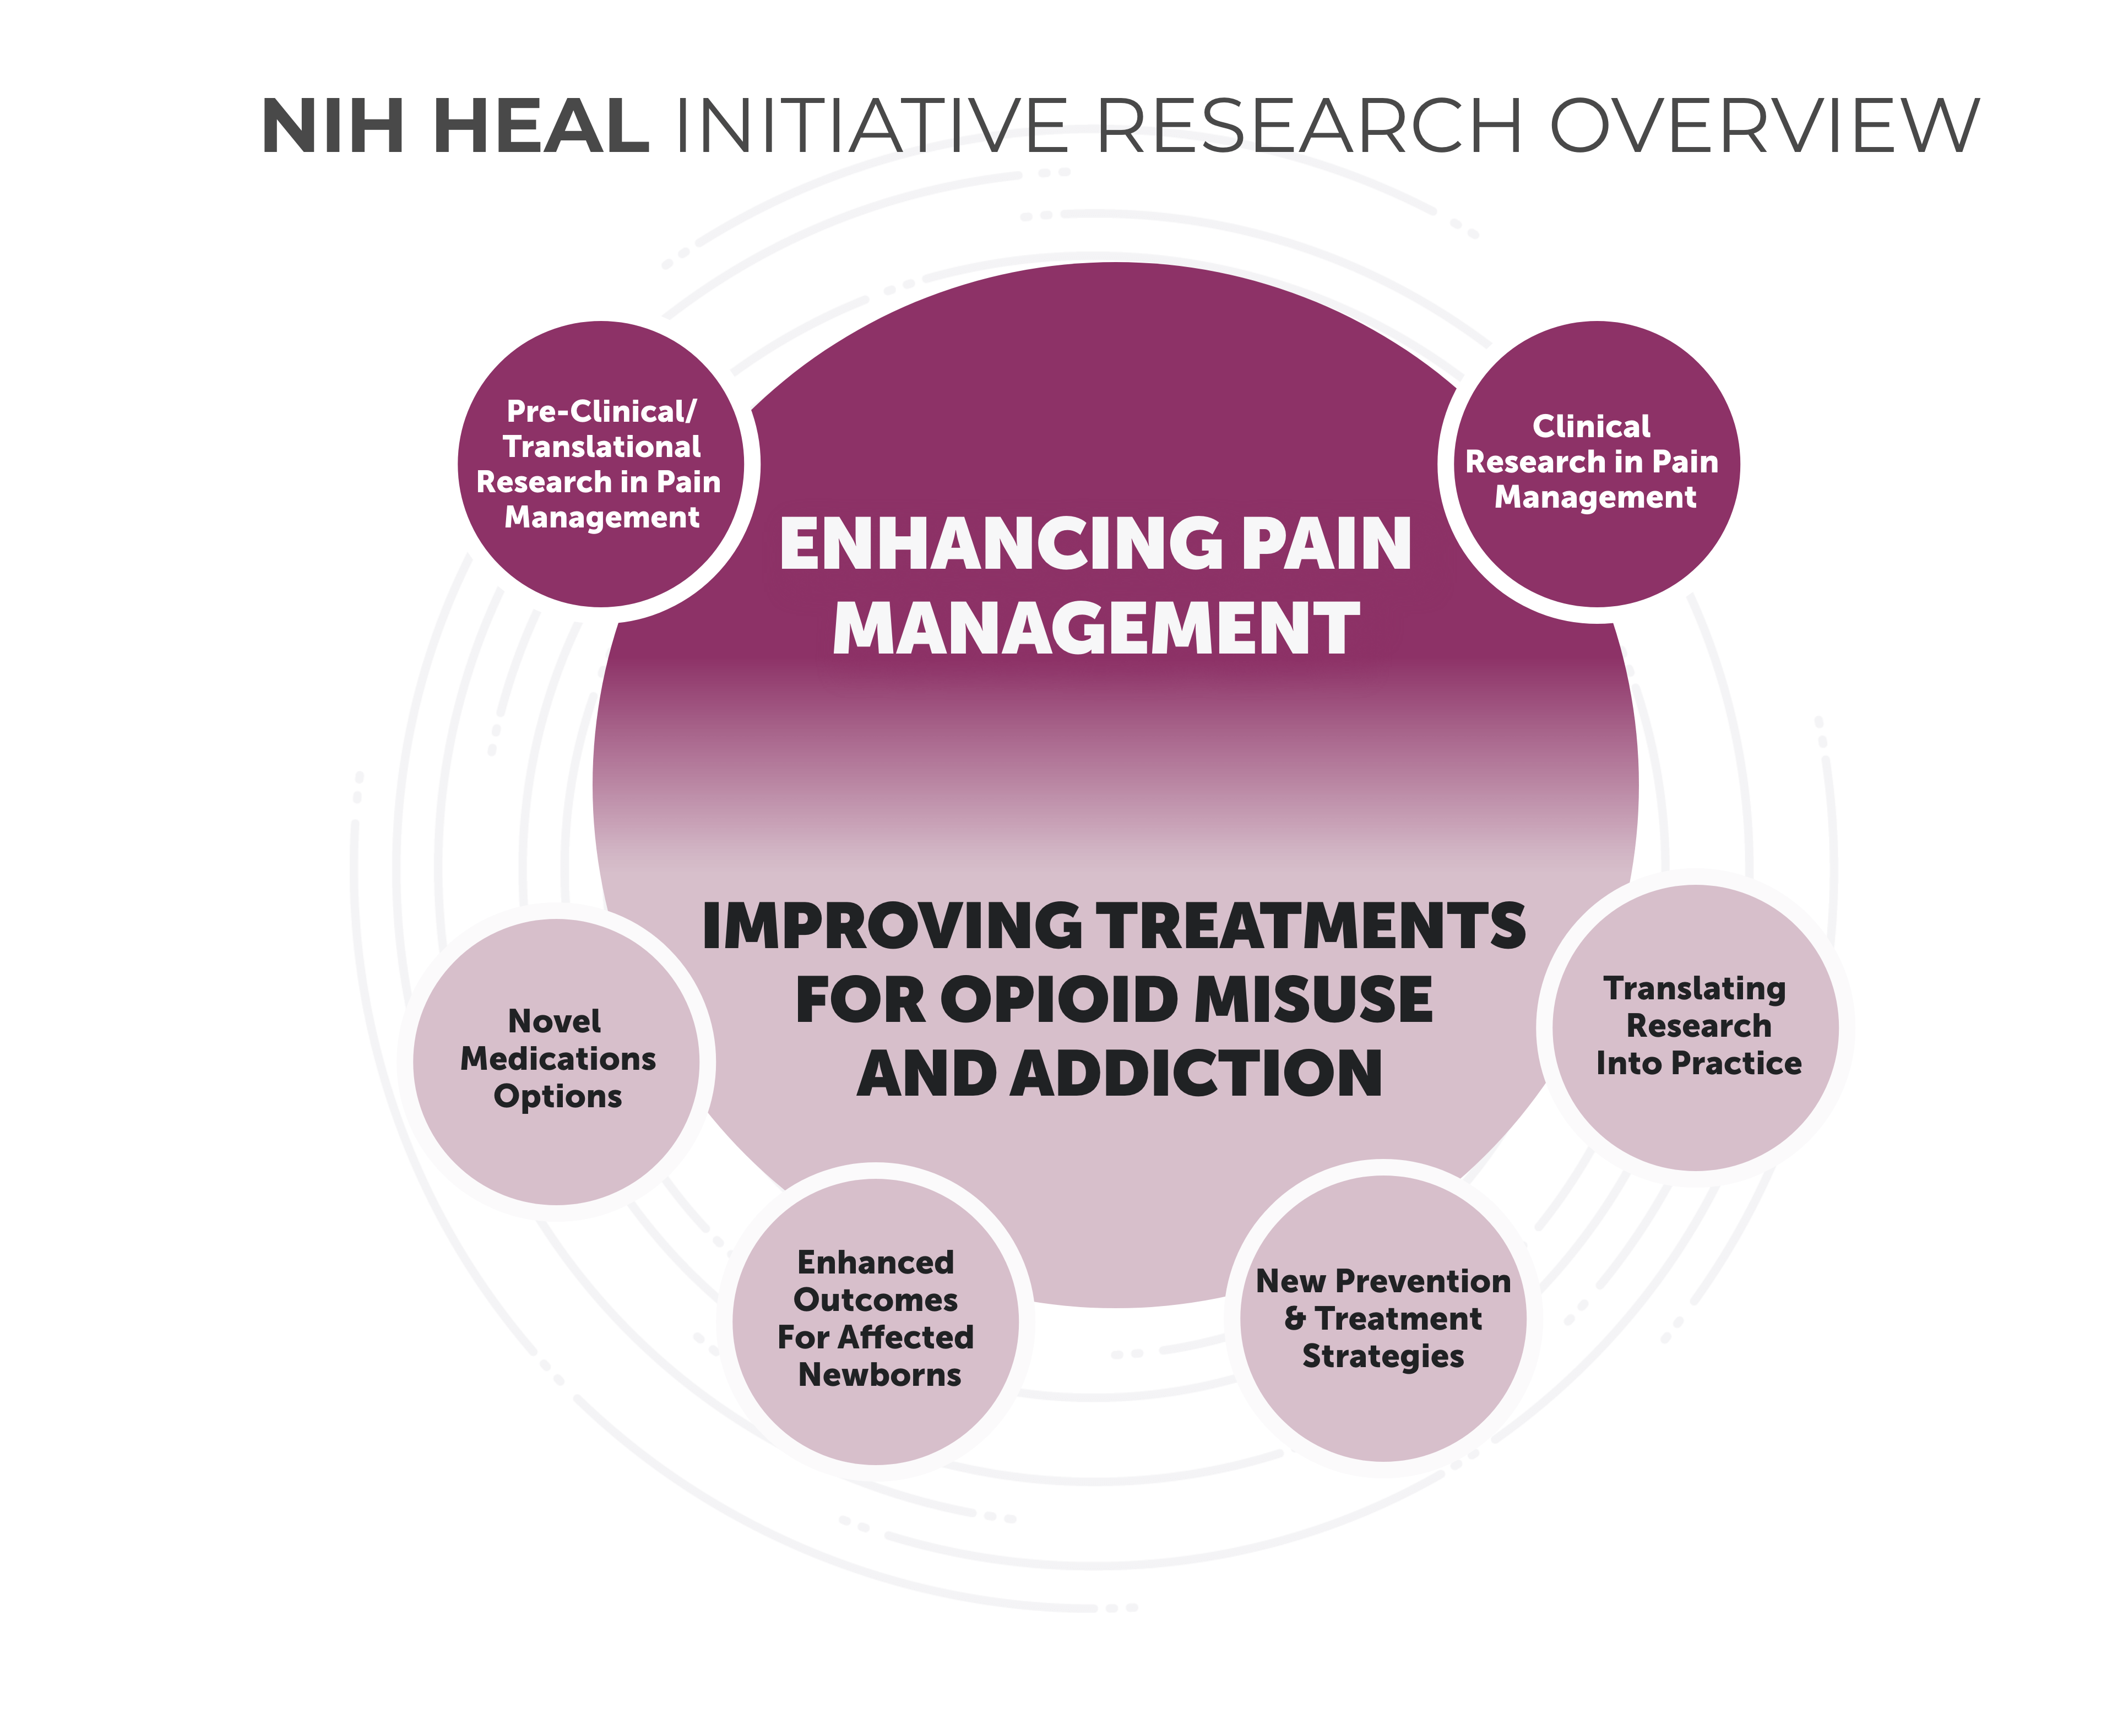 The NIH HEAL Initiative's six research focus areas are grouped in two themes: enhancing pain management and improving treatment for opioid misuse and addiction. Learn more about the NIH HEAL Initiative's research focus areas.